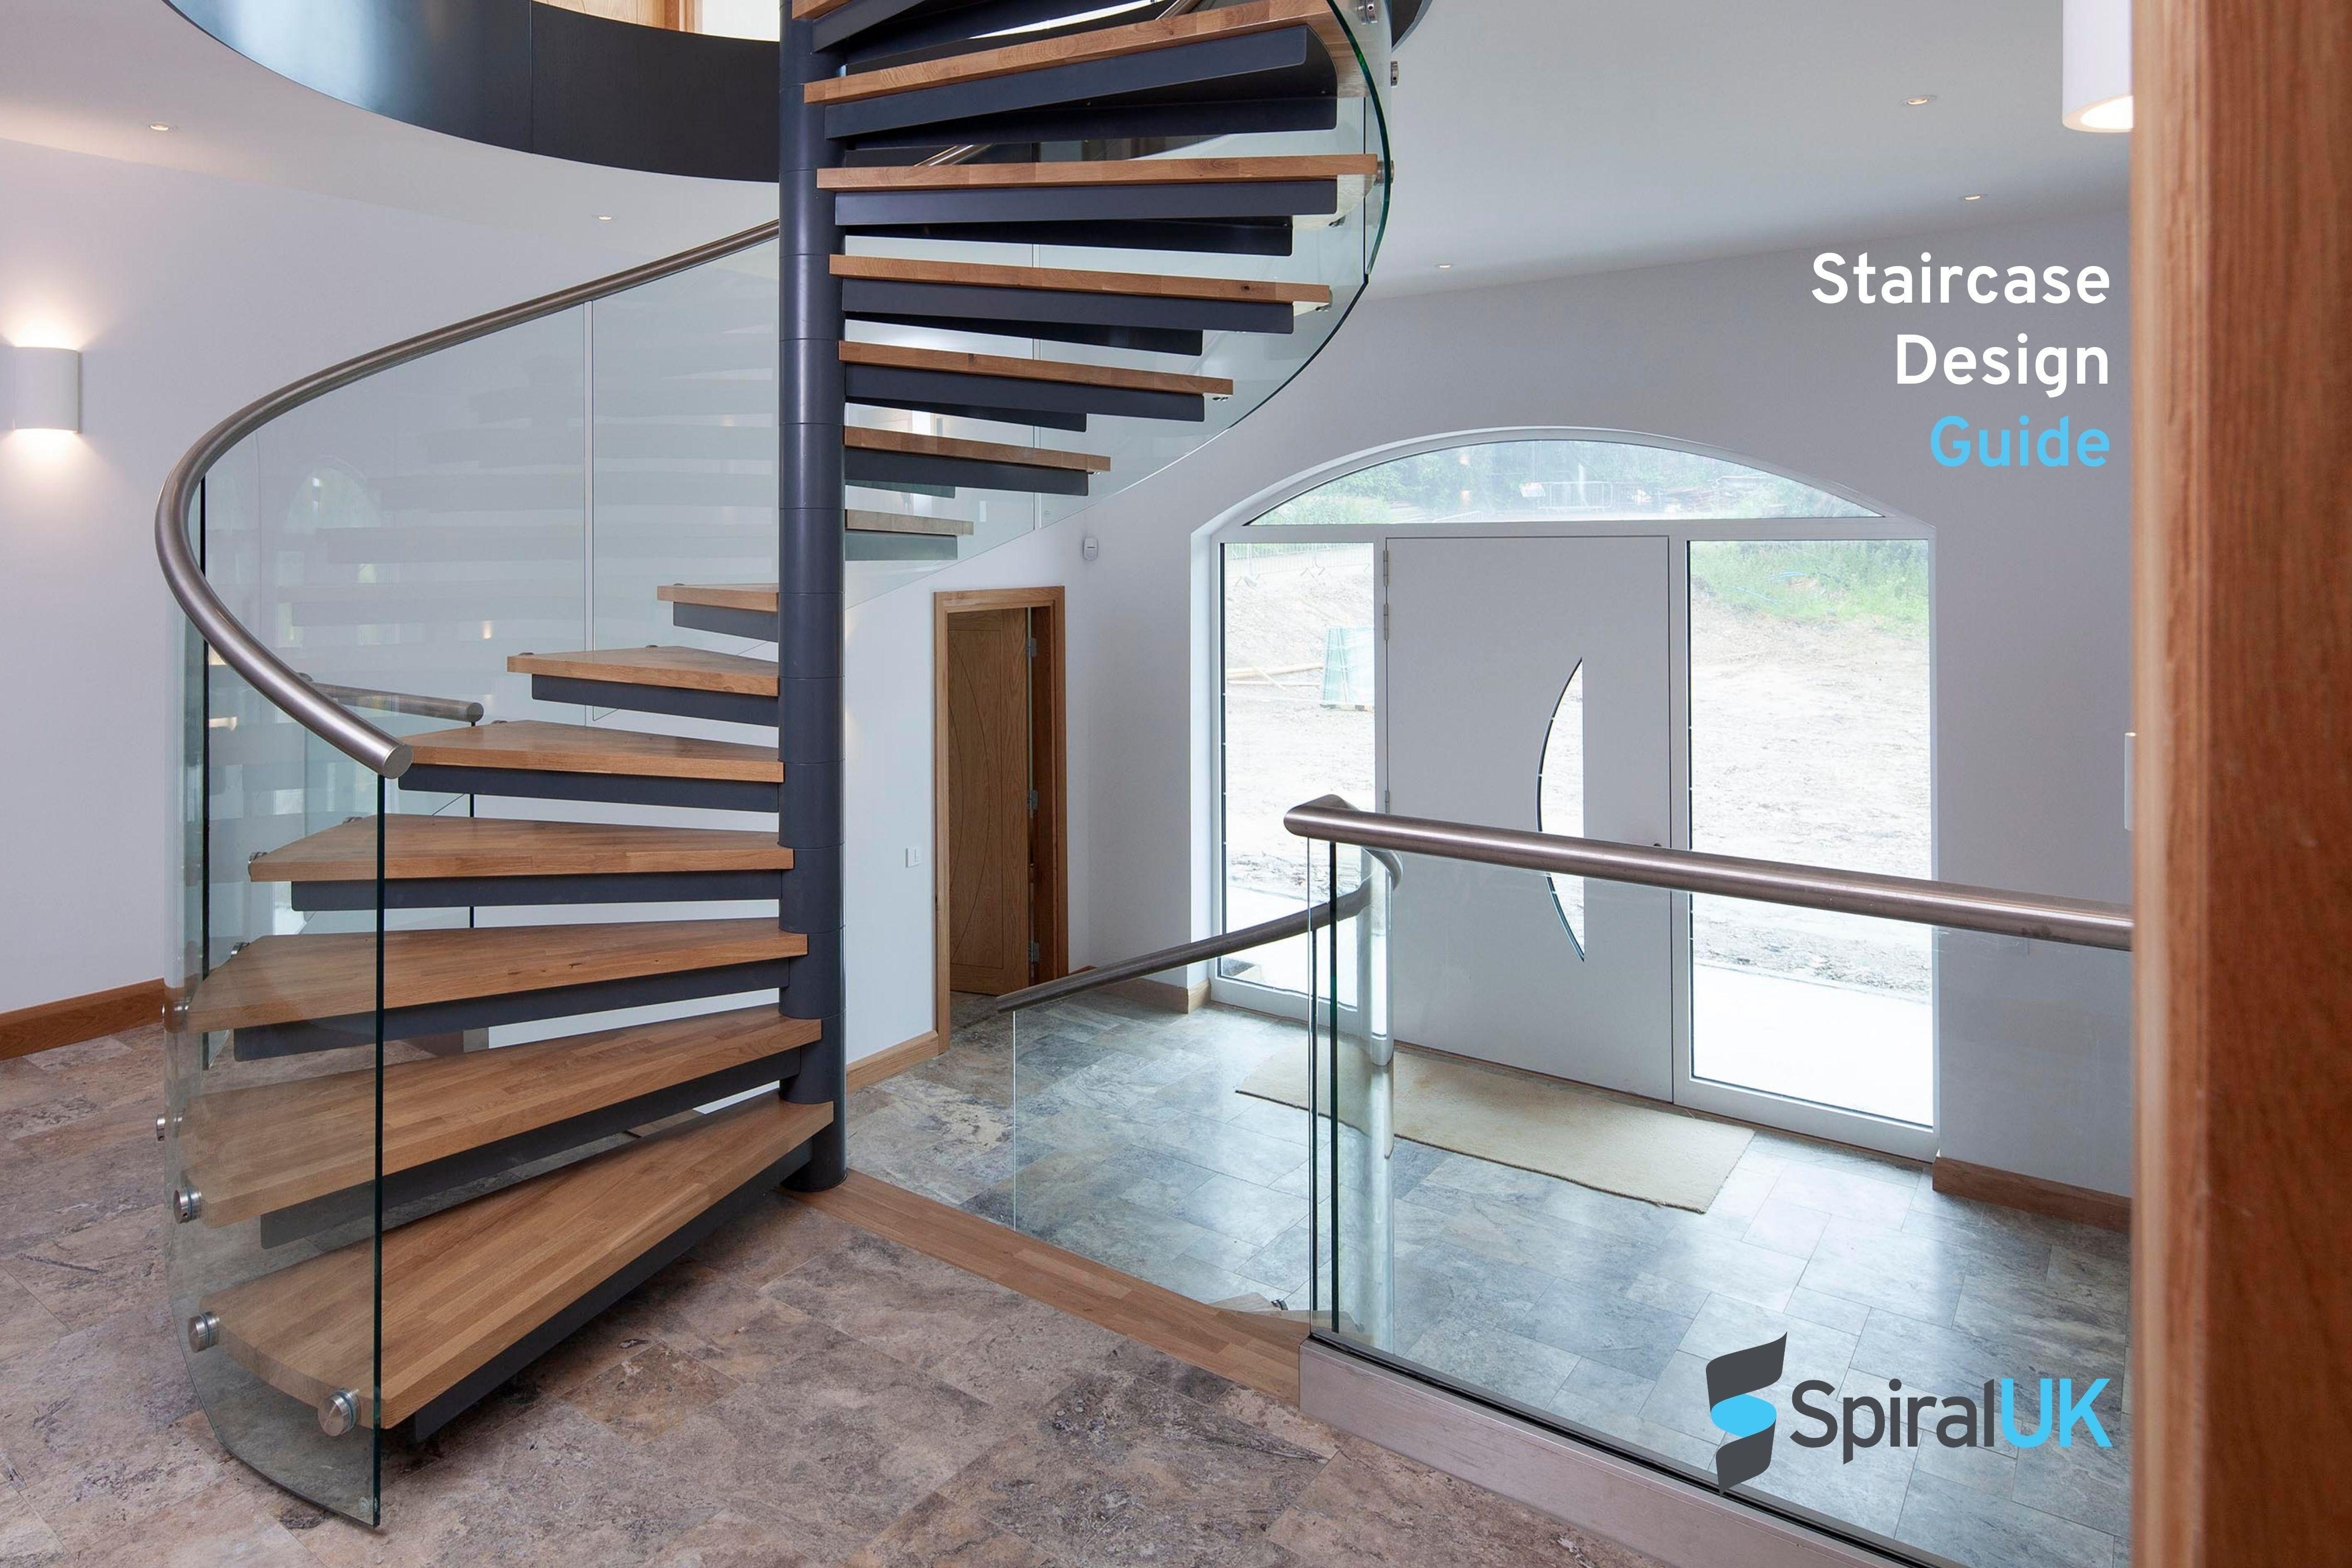 Cover of staircase design guide